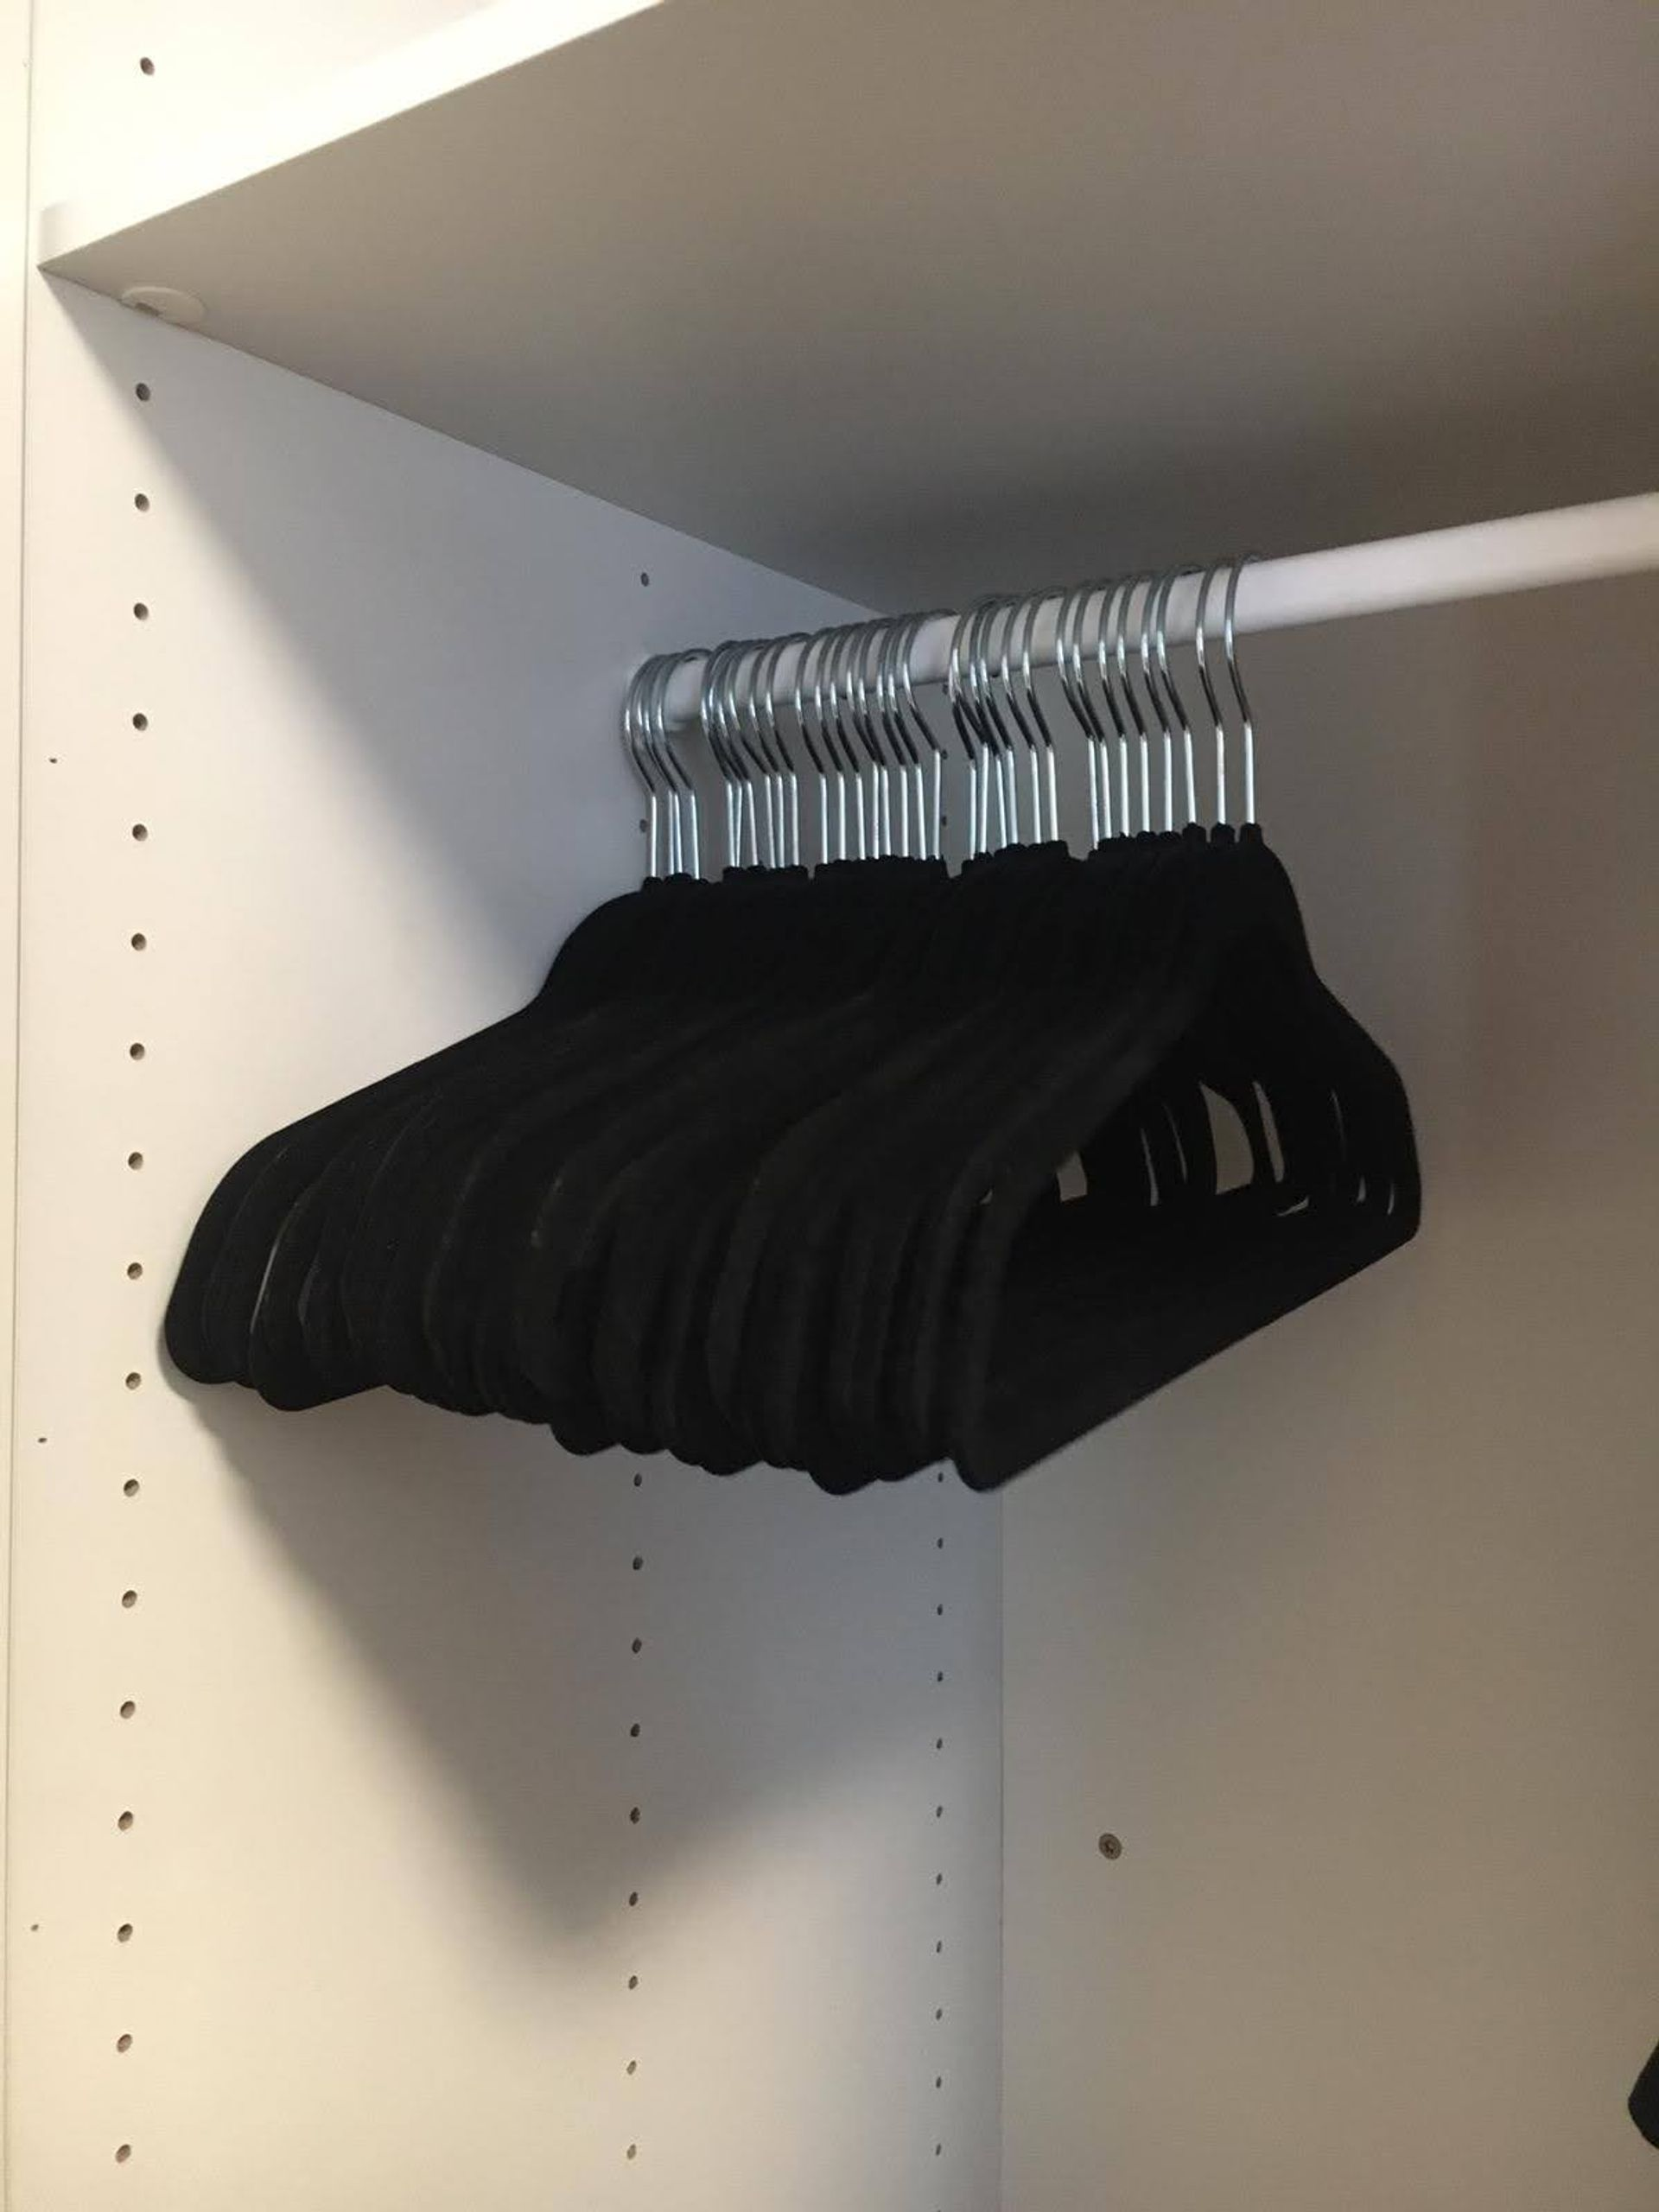 Clothing hangers on a clothing rail